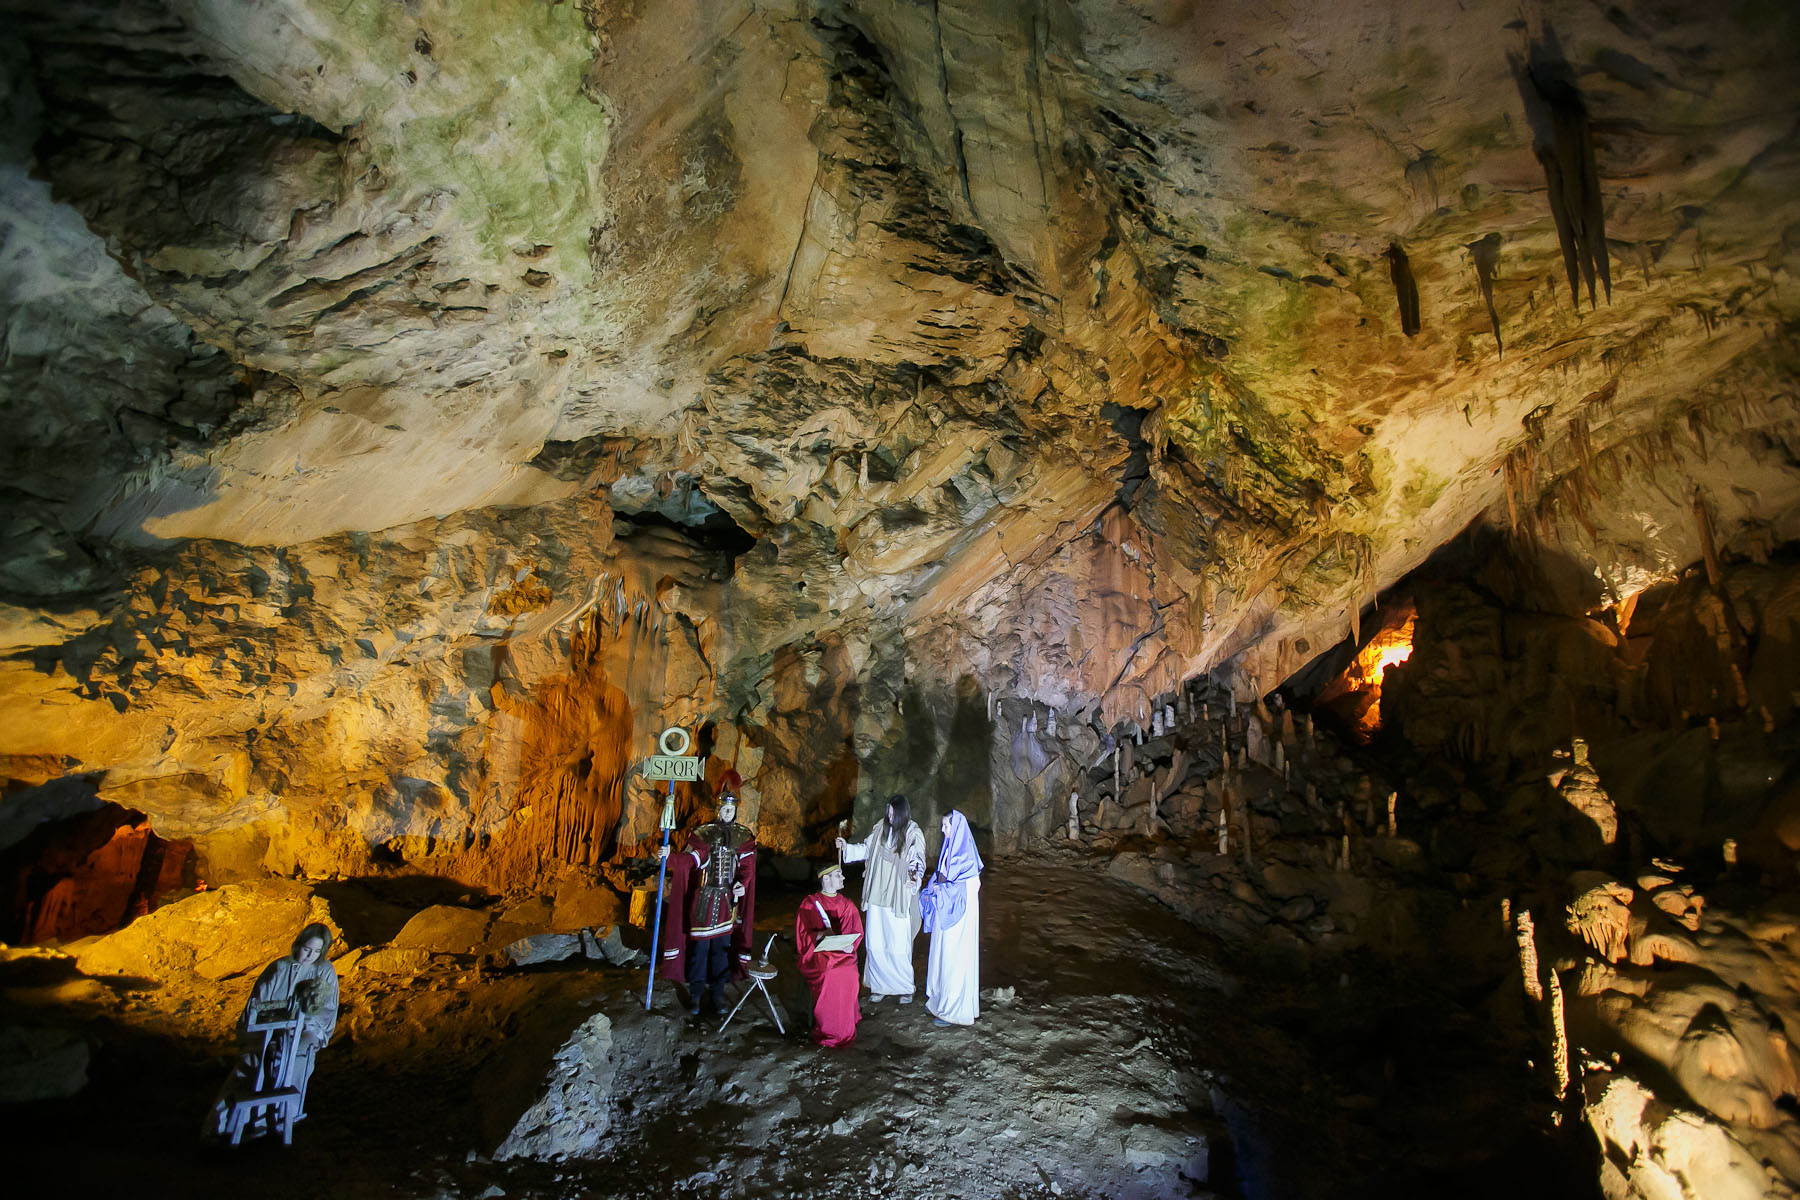 Actors perform in a biblical scene of the census during the world's largest live Nativity scene in a cave, staged in the world-famous Postojna Cave in Slovenia, Dec. 25, 2015.